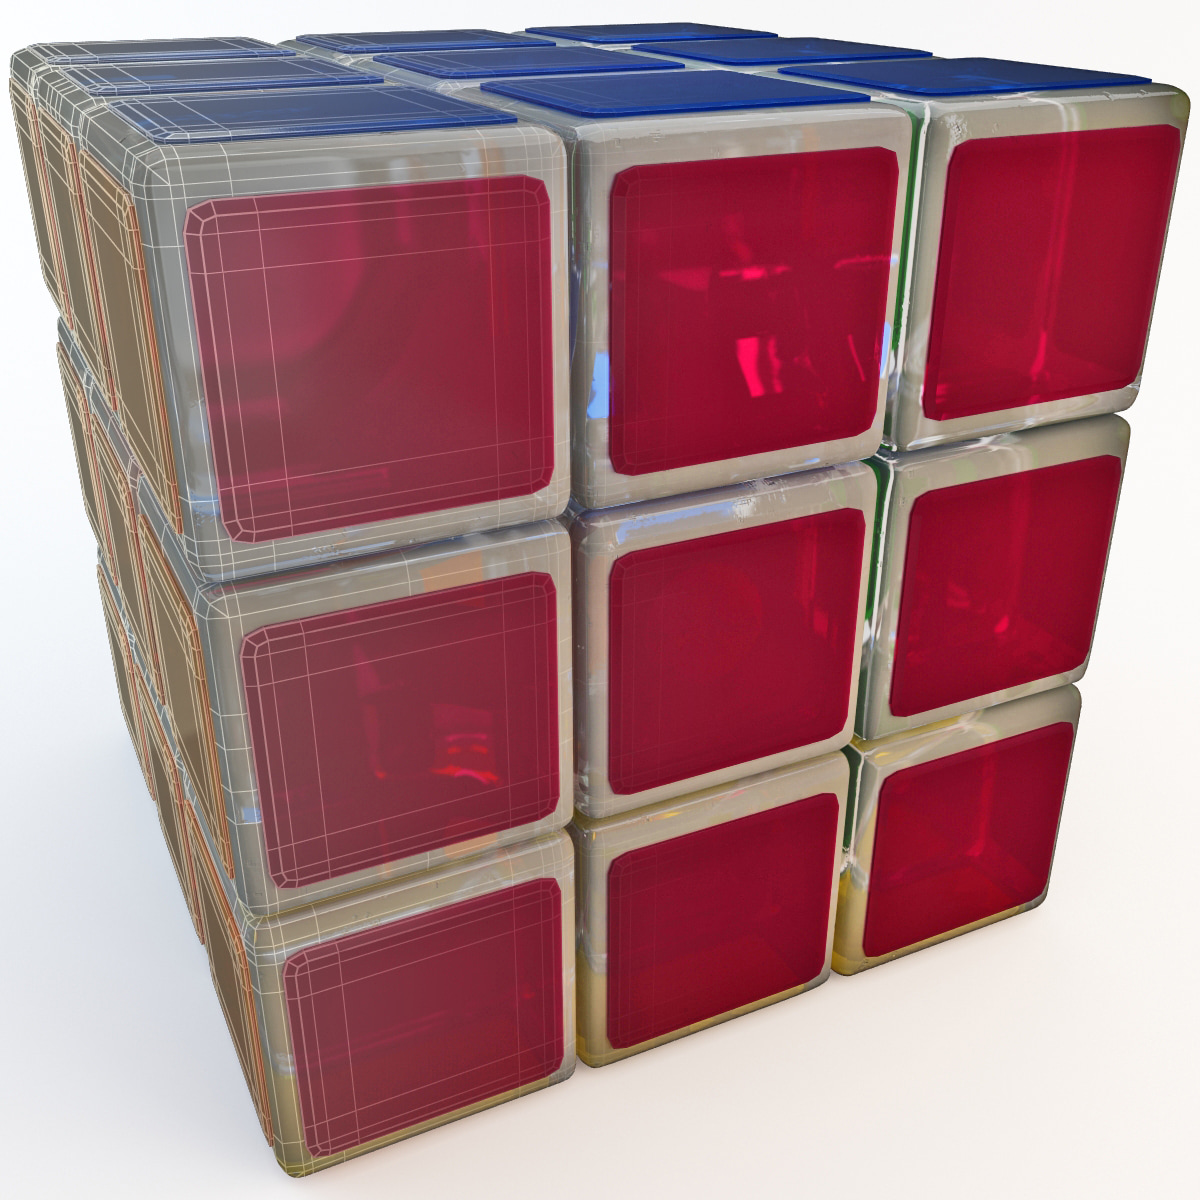 rubiks cube 2 3ds